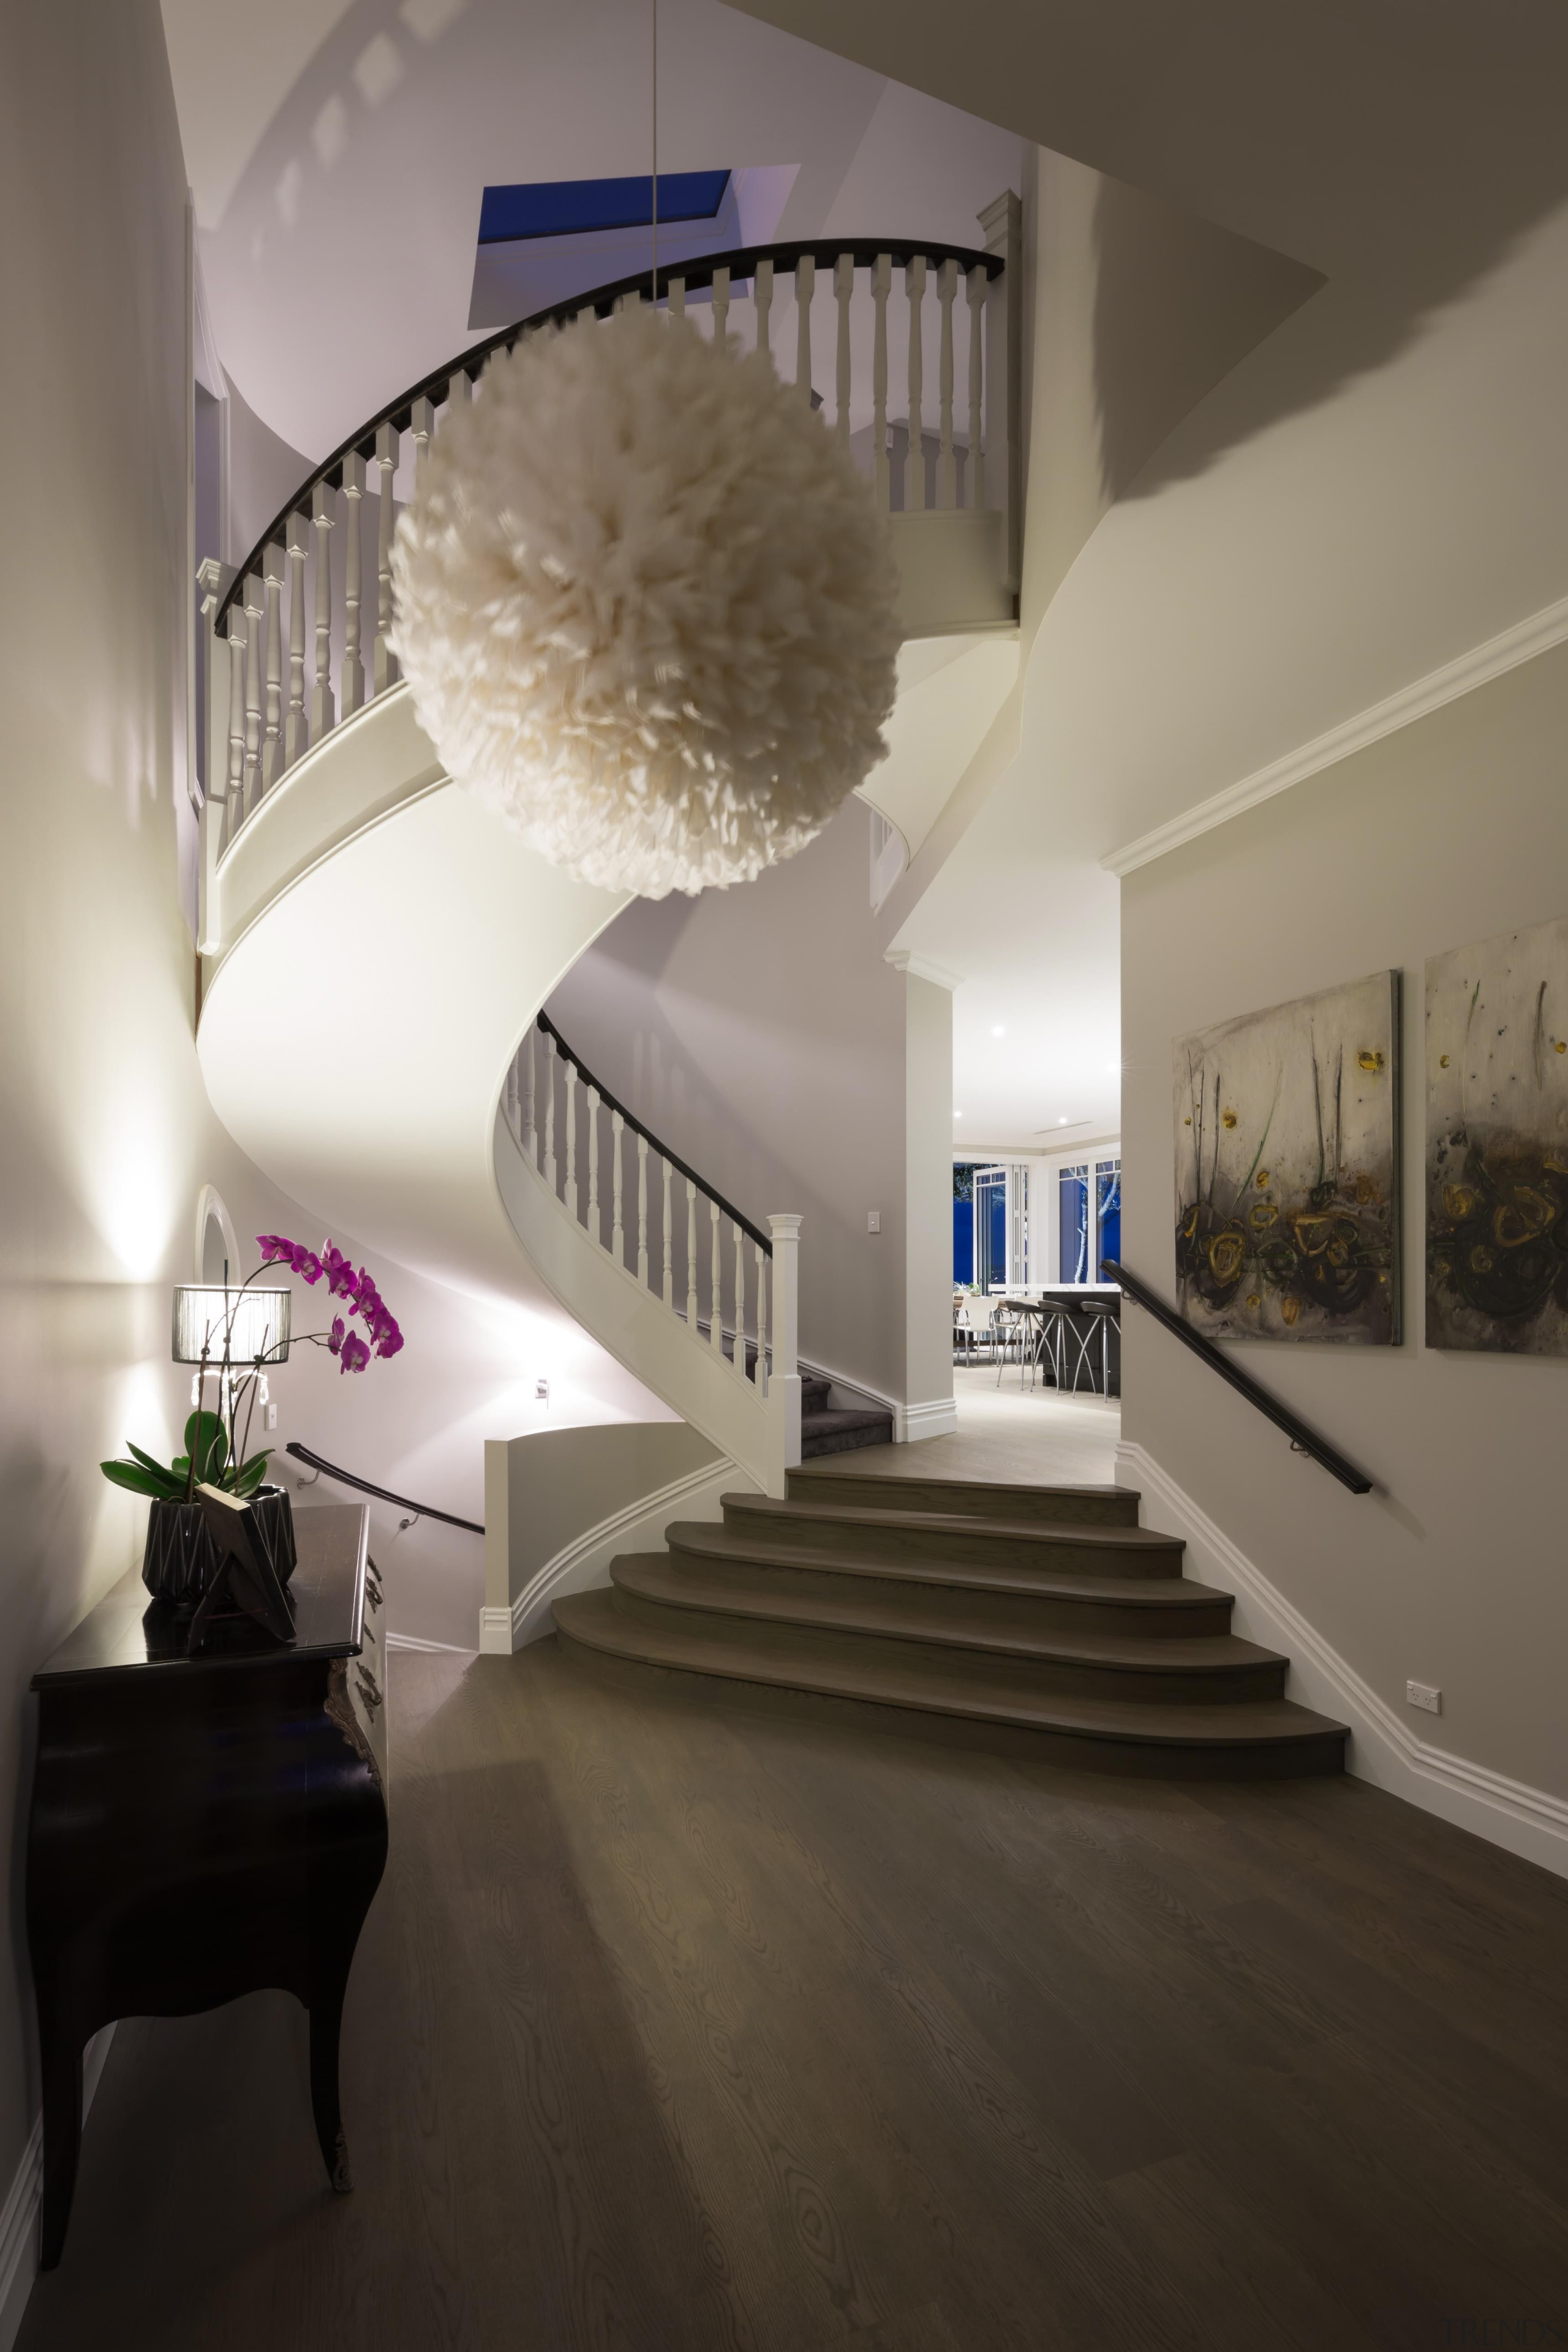 Img9030 - architecture | ceiling | daylighting | architecture, ceiling, daylighting, estate, floor, home, house, interior design, living room, room, stairs, gray, black